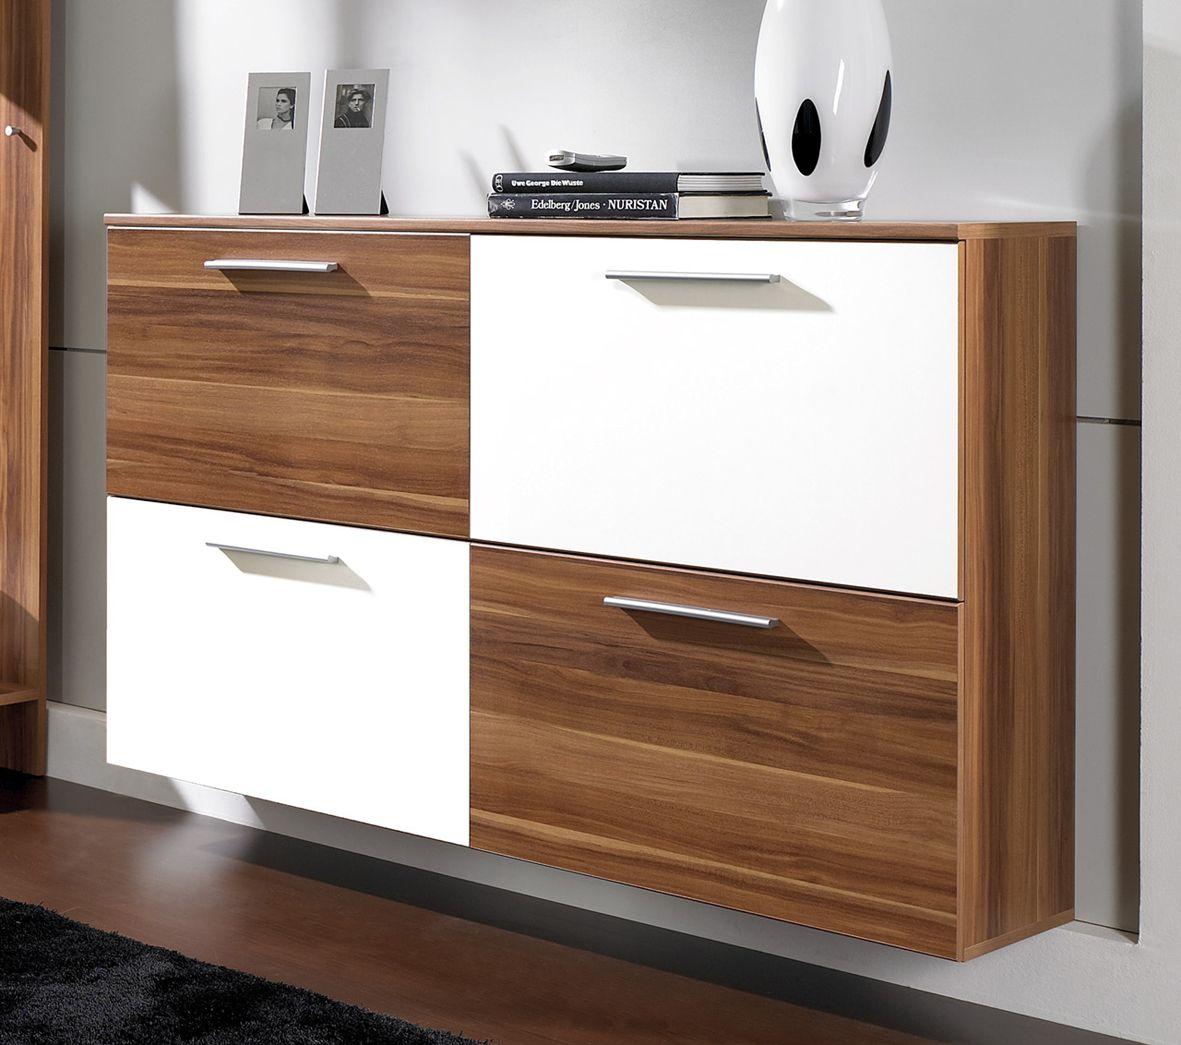 Shoe Cabinet Intro Shoe Cabinet In Walnut And White Shoe Cabinets Fashion  Shoe Storage Cabinets Ideas Part 97